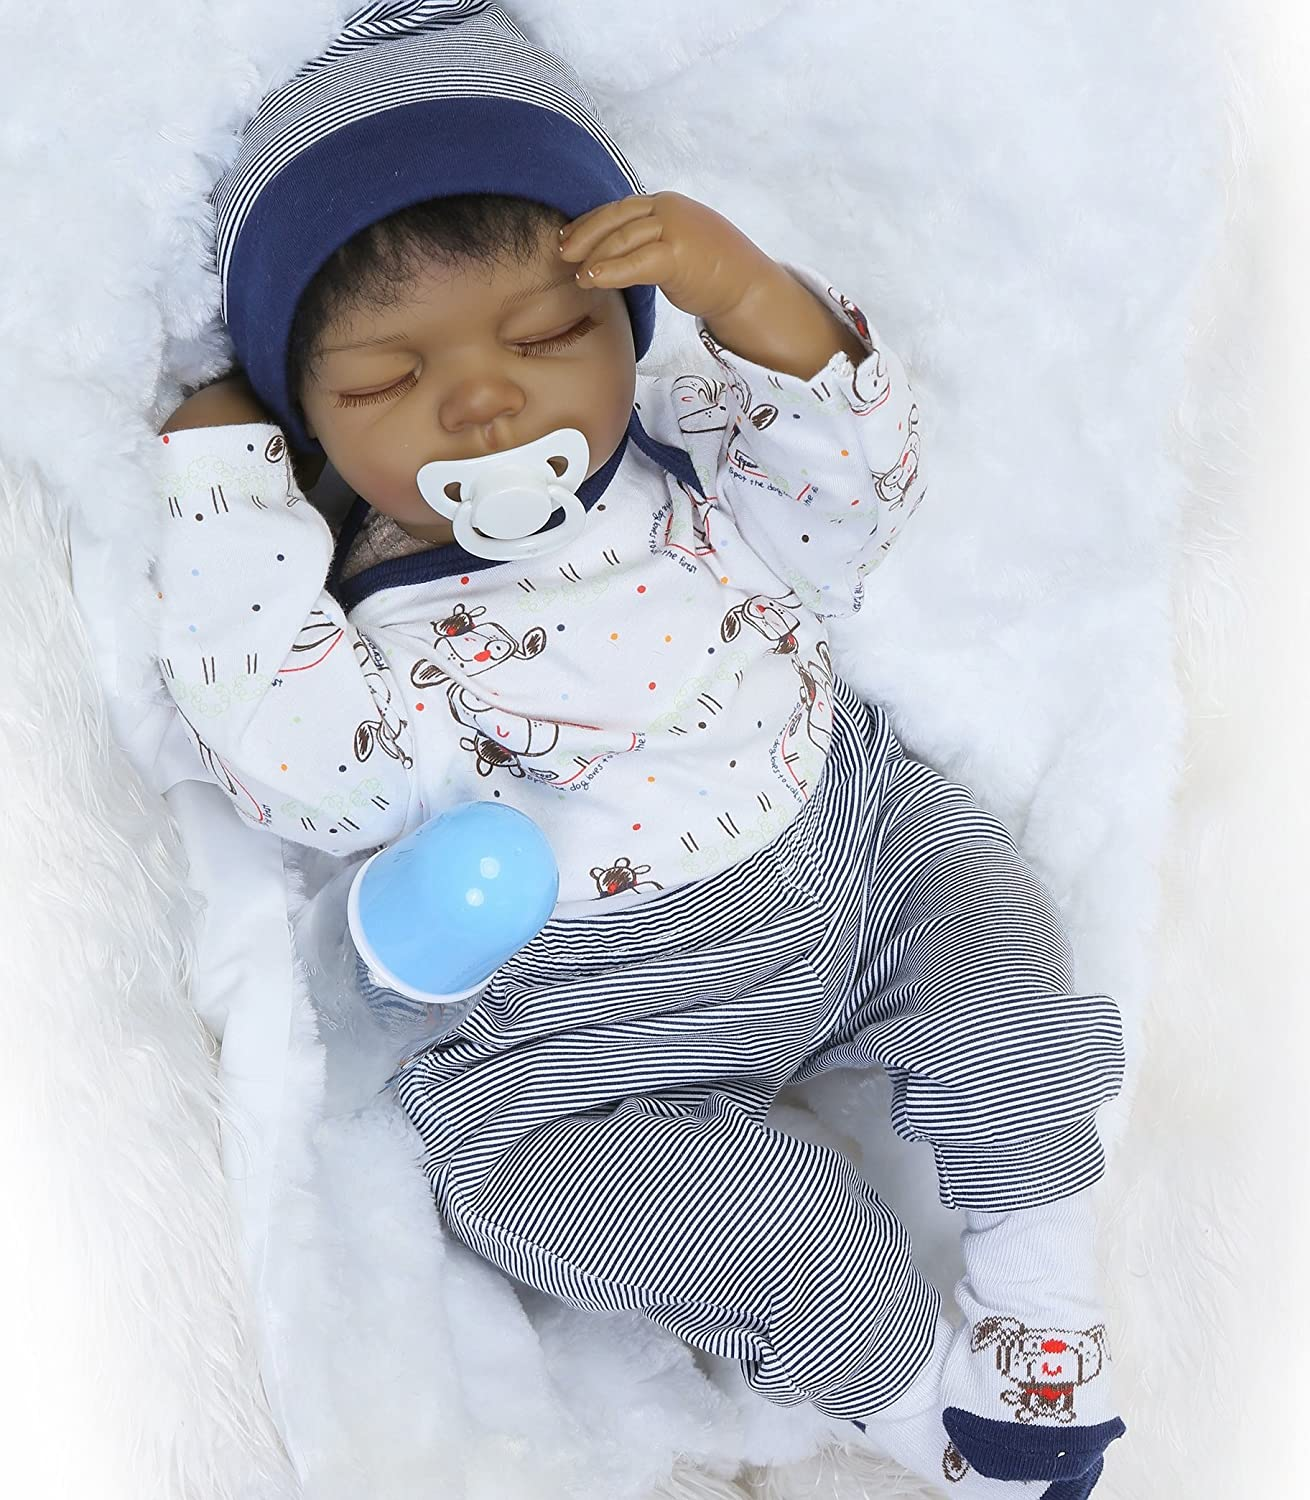 Amazon com sleeping reborn baby dolls boys african american boy black doll 22inch 55cm silicone babies eyes closed realistic cute doll handmade weighted